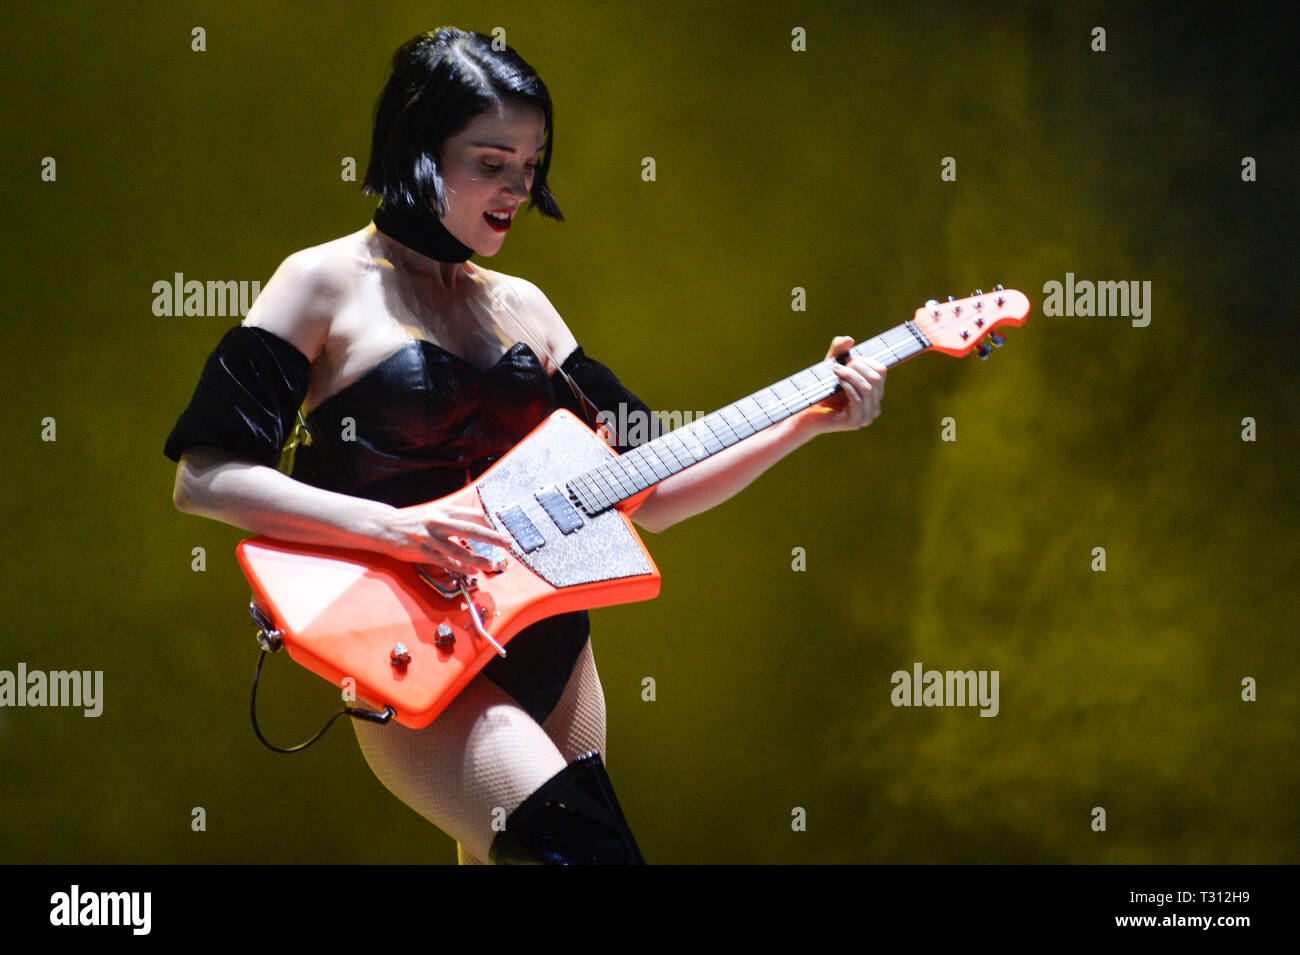 Sao Paulo, Brazil. 05th Apr, 2019. St. Vincent performs at the Lollapalooza 2019 festival, held at the Autodromo de Interlagos in São Paulo on Friday, 05. (PHOTO: LEVI BIANCO/BRAZIL PHOTO PRESS) Credit: Brazil Photo Press/Alamy Live News - Stock Image